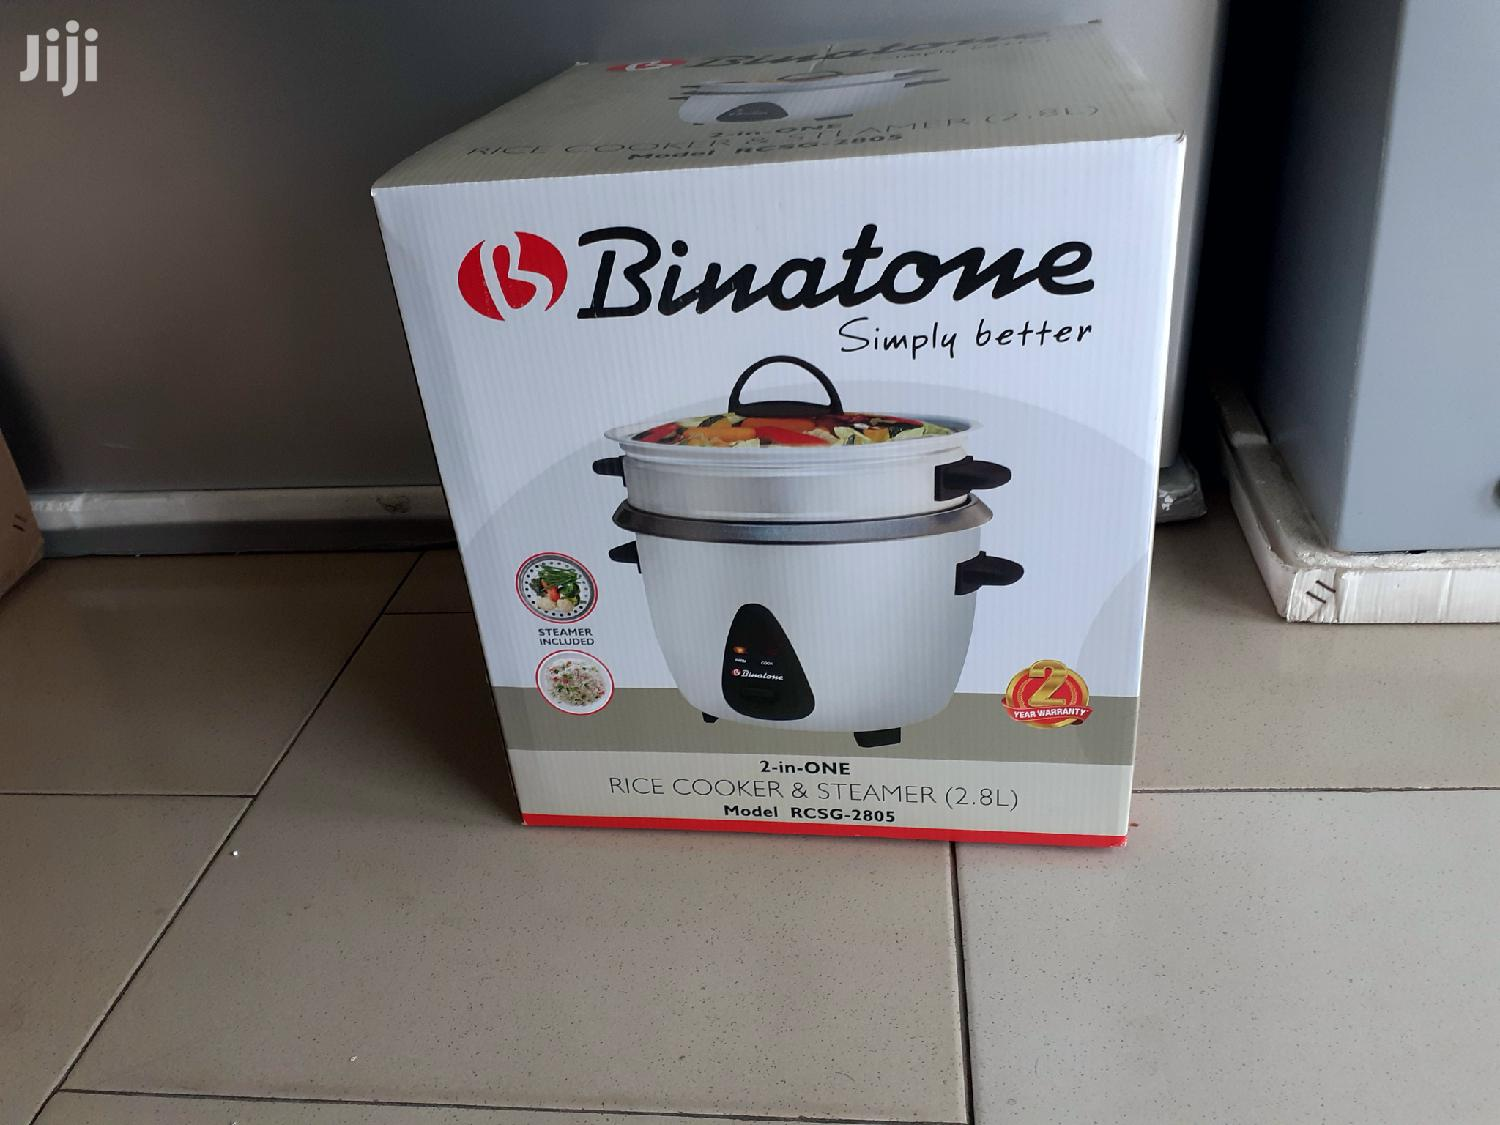 Binatone Rice Cooker With Steamer 2.8litres (Rcsg 2805)